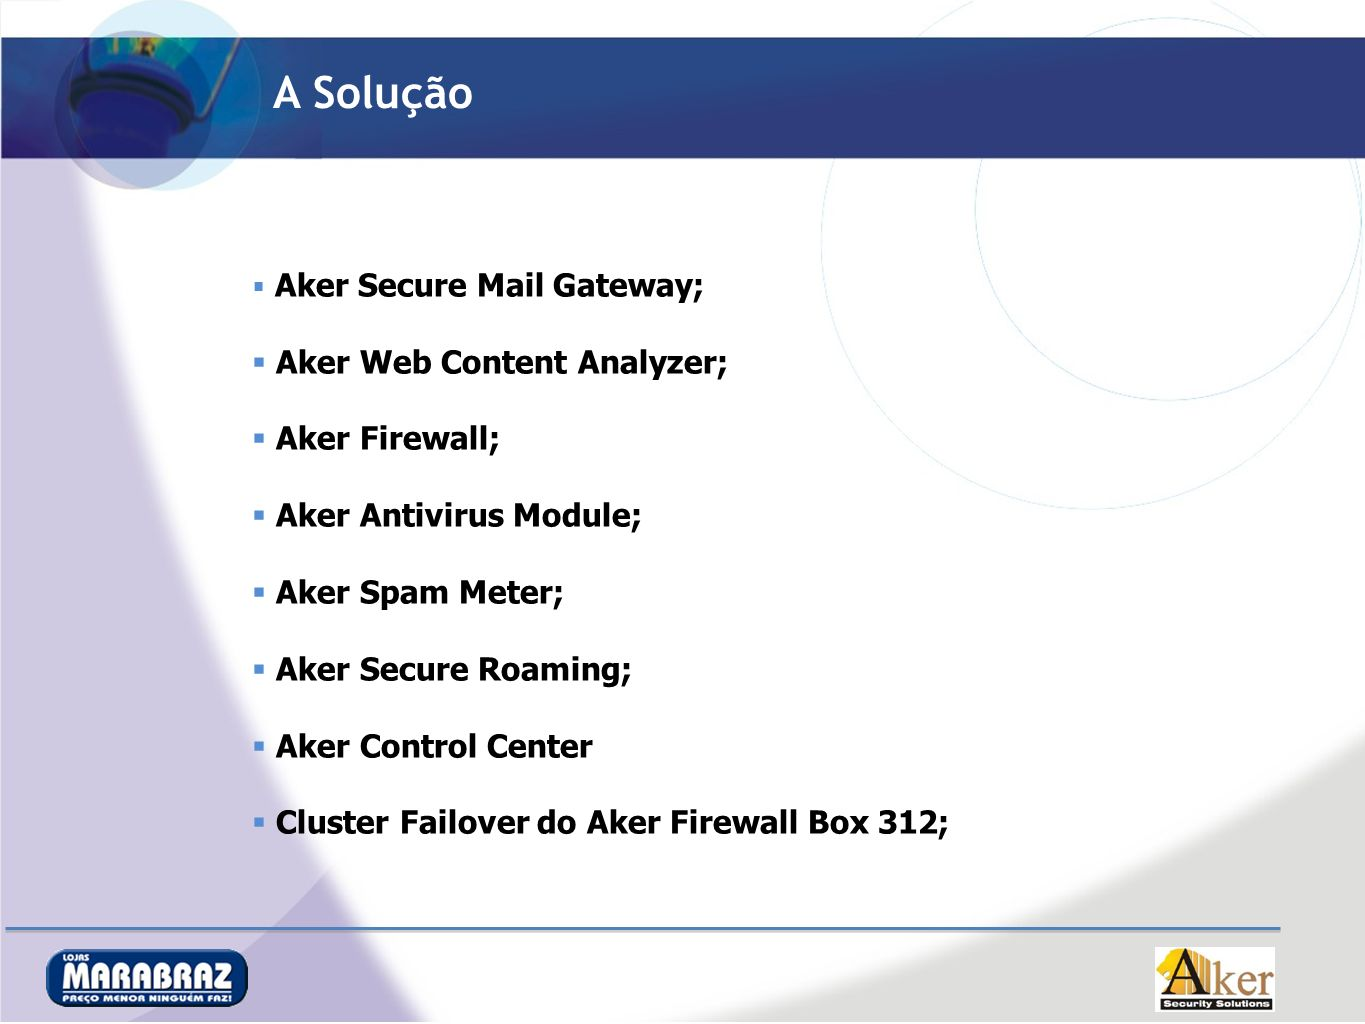 A Solução Aker Secure Mail Gateway; Aker Web Content Analyzer; Aker Firewall; Aker Antivirus Module; Aker Spam Meter; Aker Secure Roaming; Aker Control Center Cluster Failover do Aker Firewall Box 312;